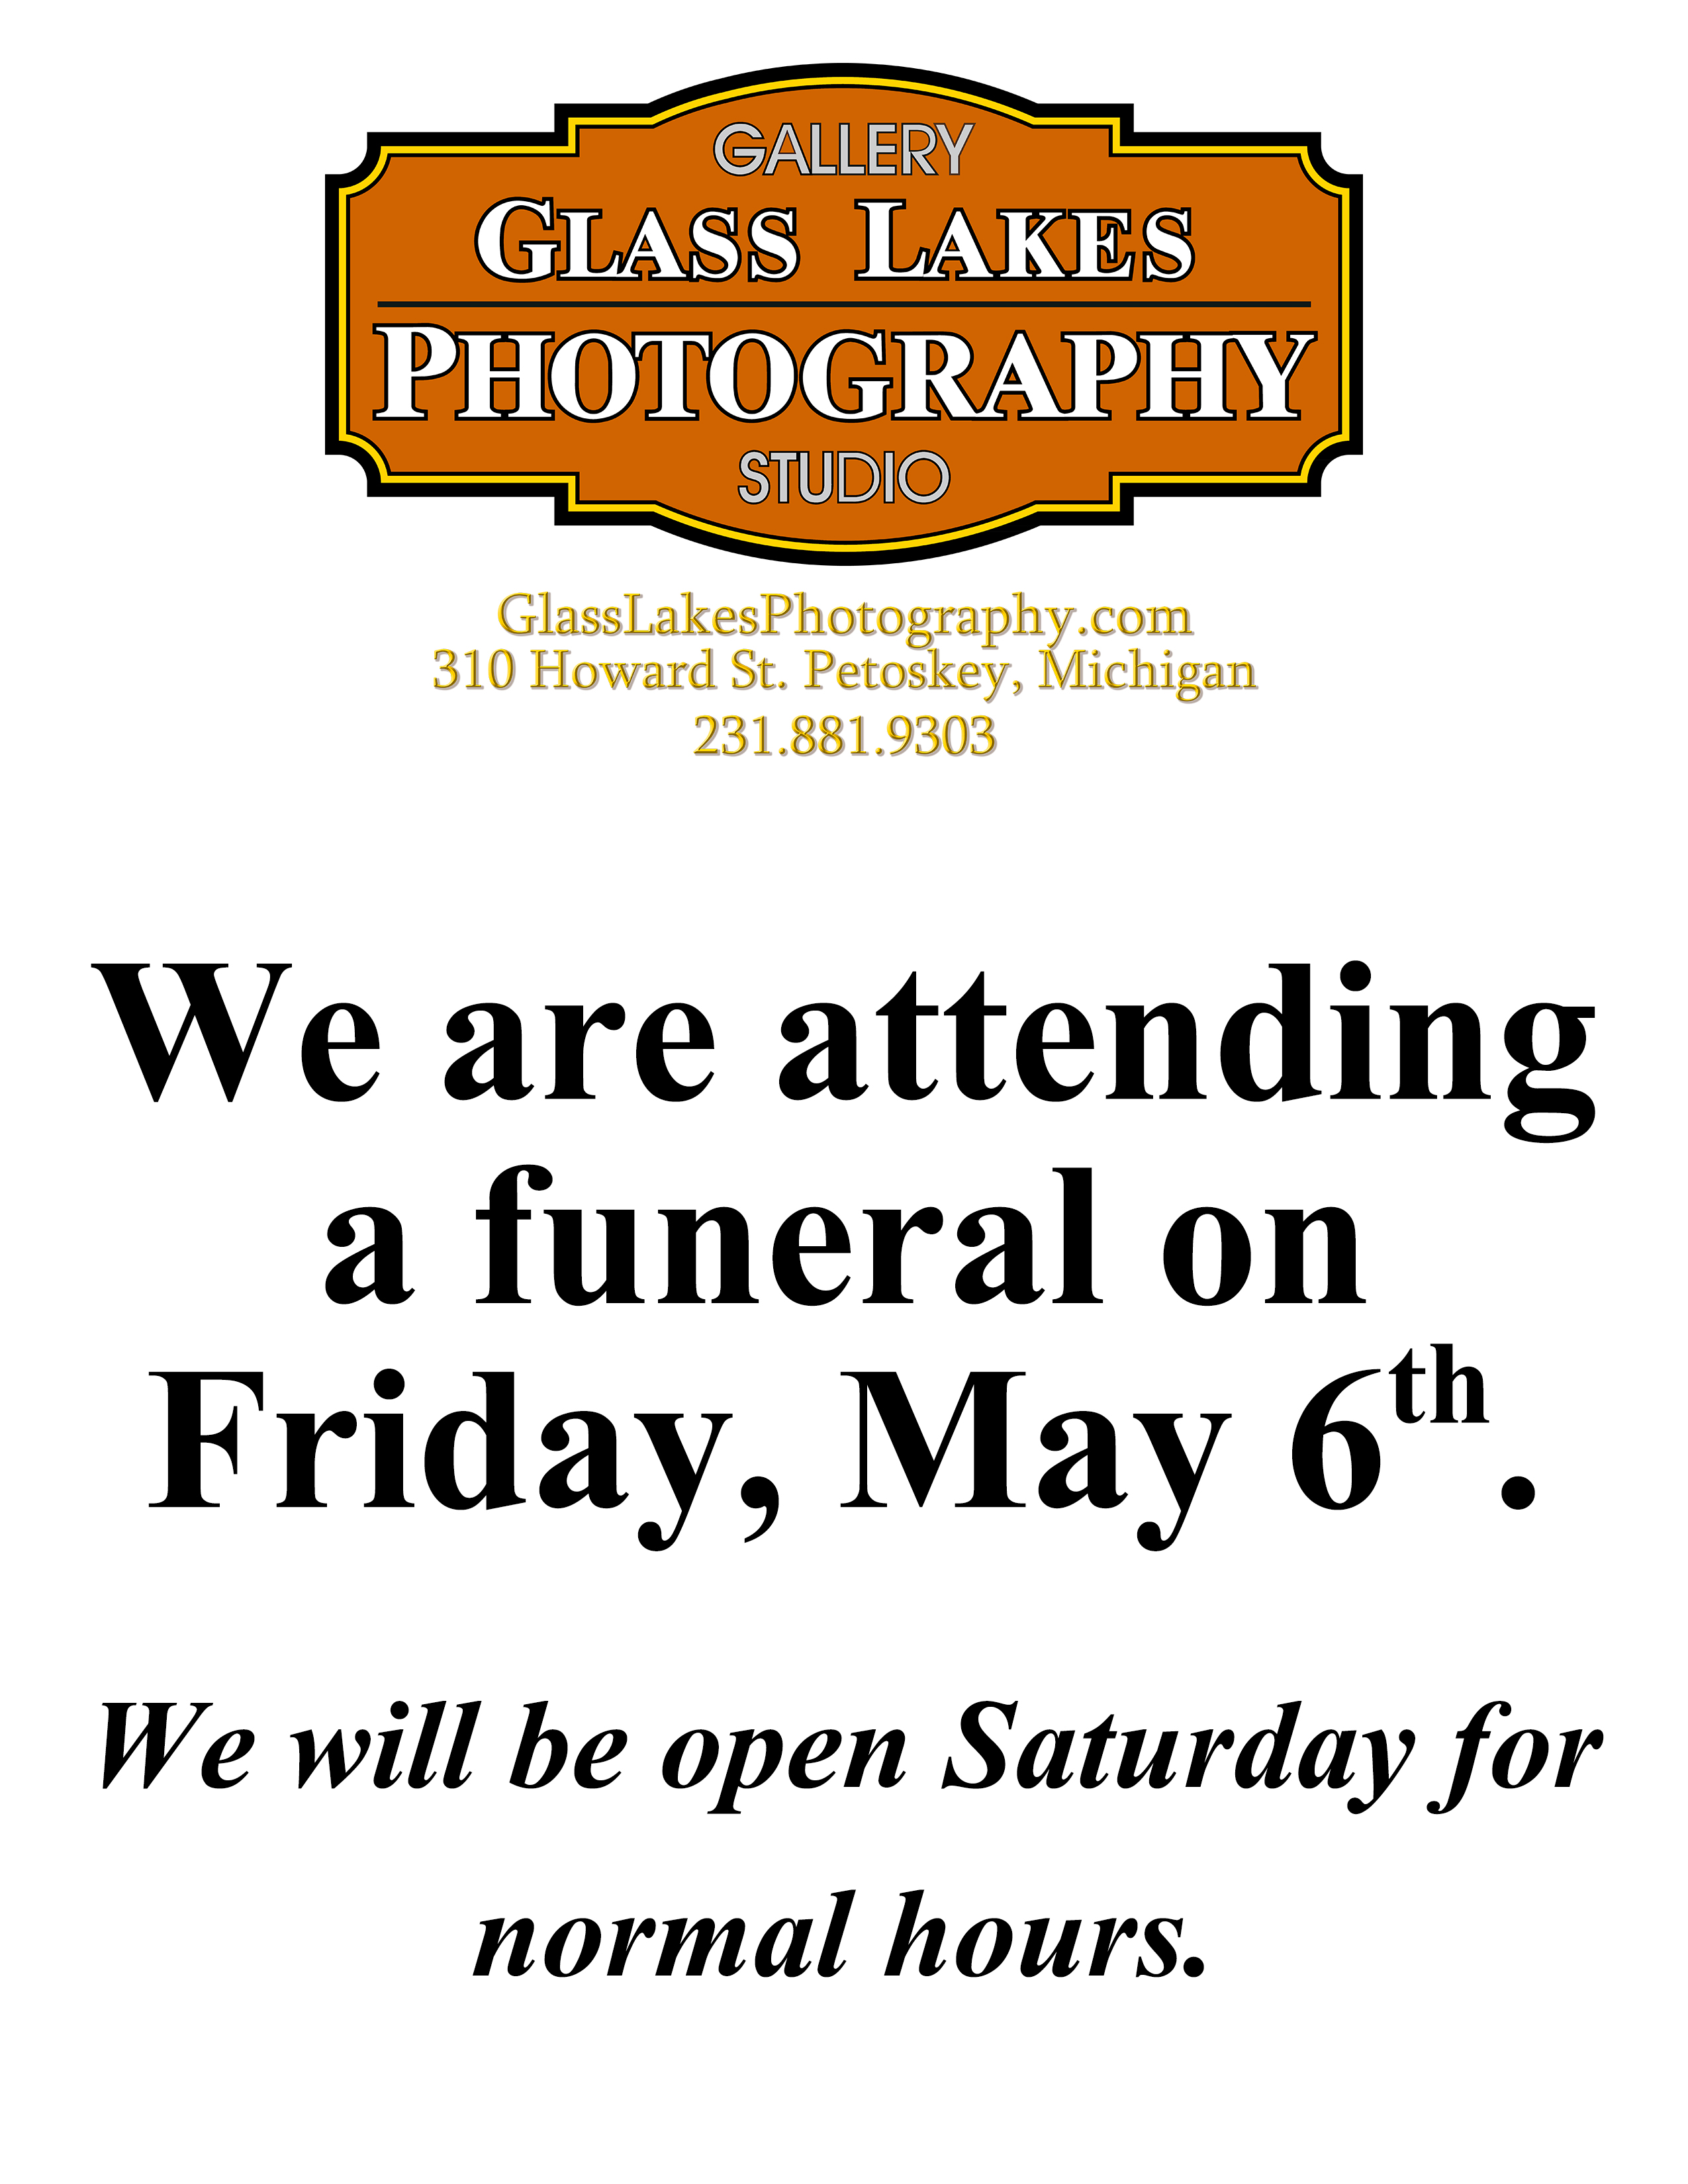 We will be closed Friday, May 6th.